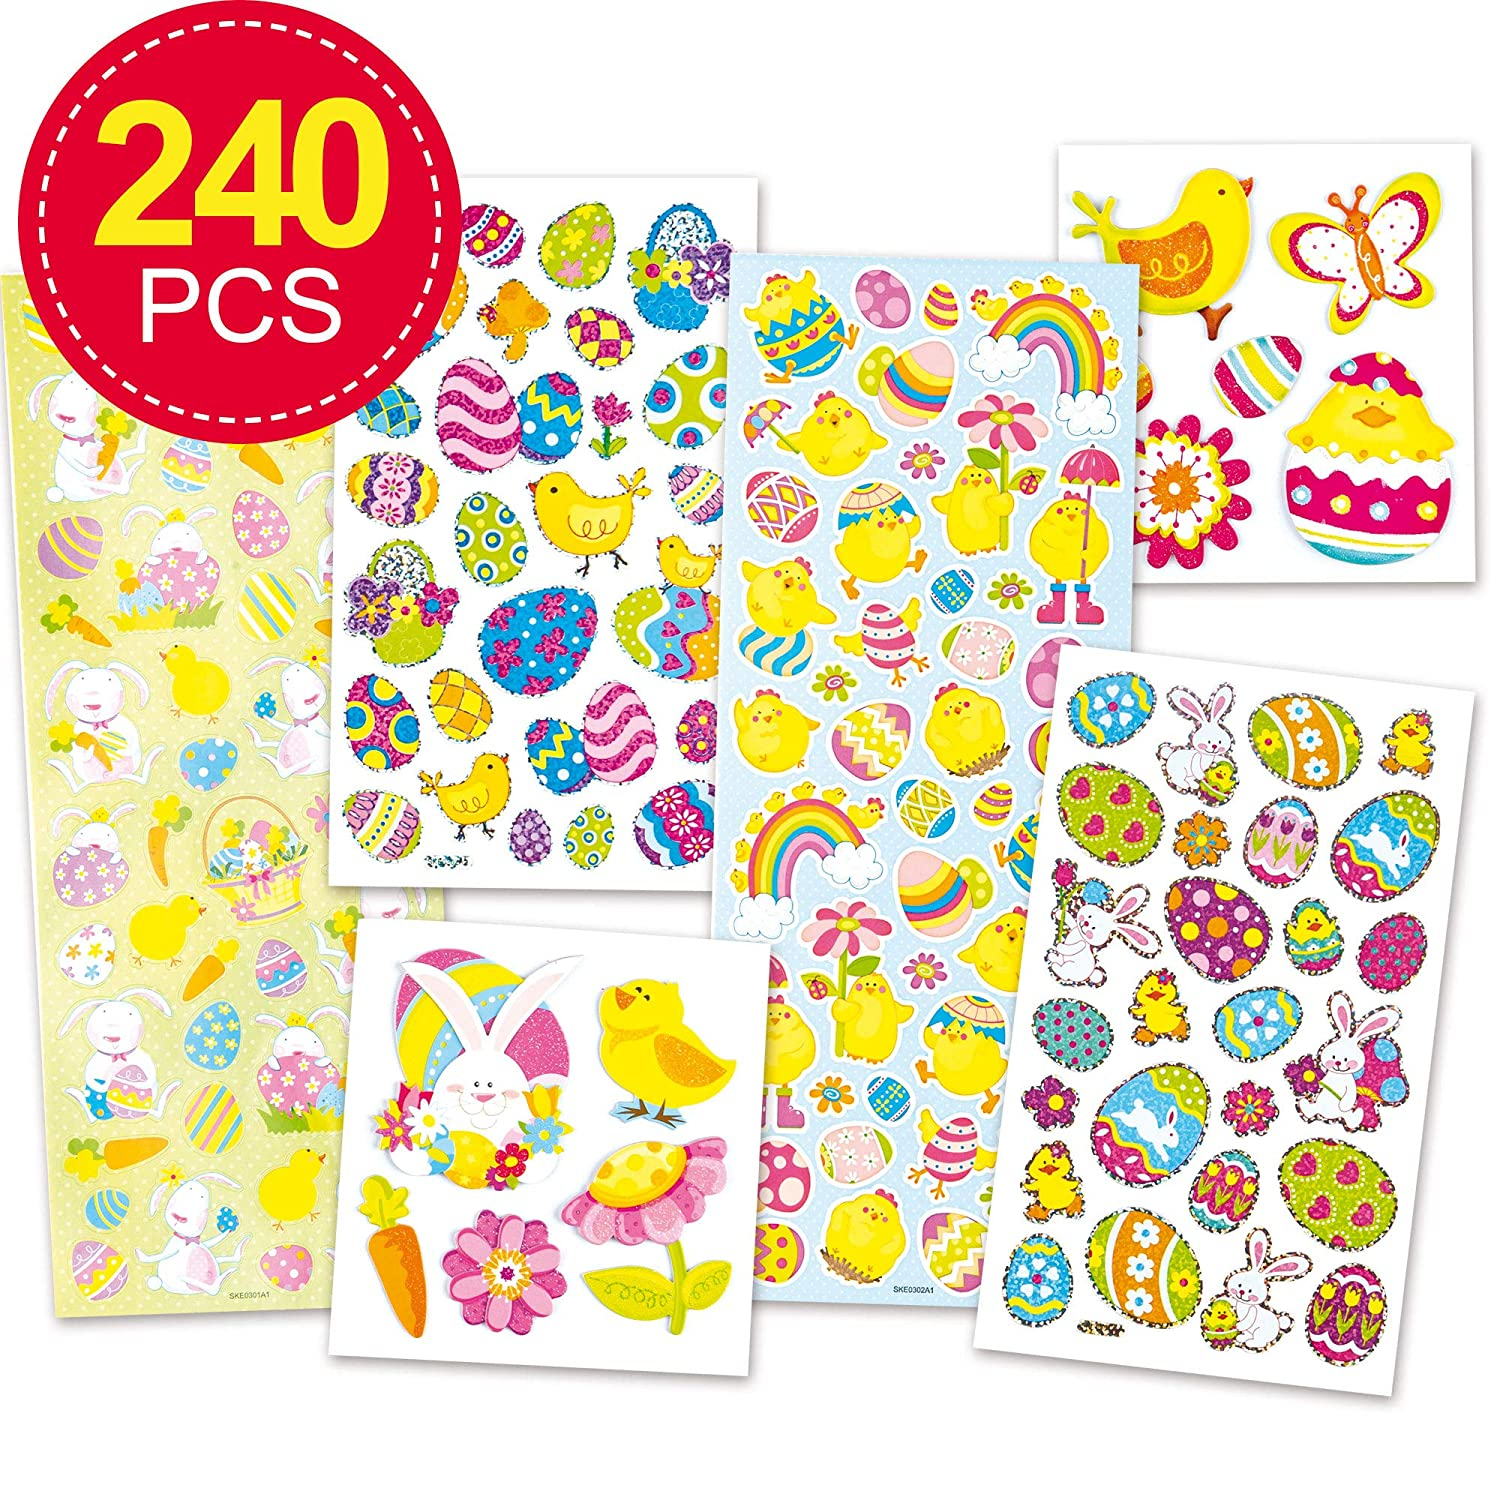 Puffy Glitter Stickers Over 50 Stickers Card Making Crafting Assorted Styles